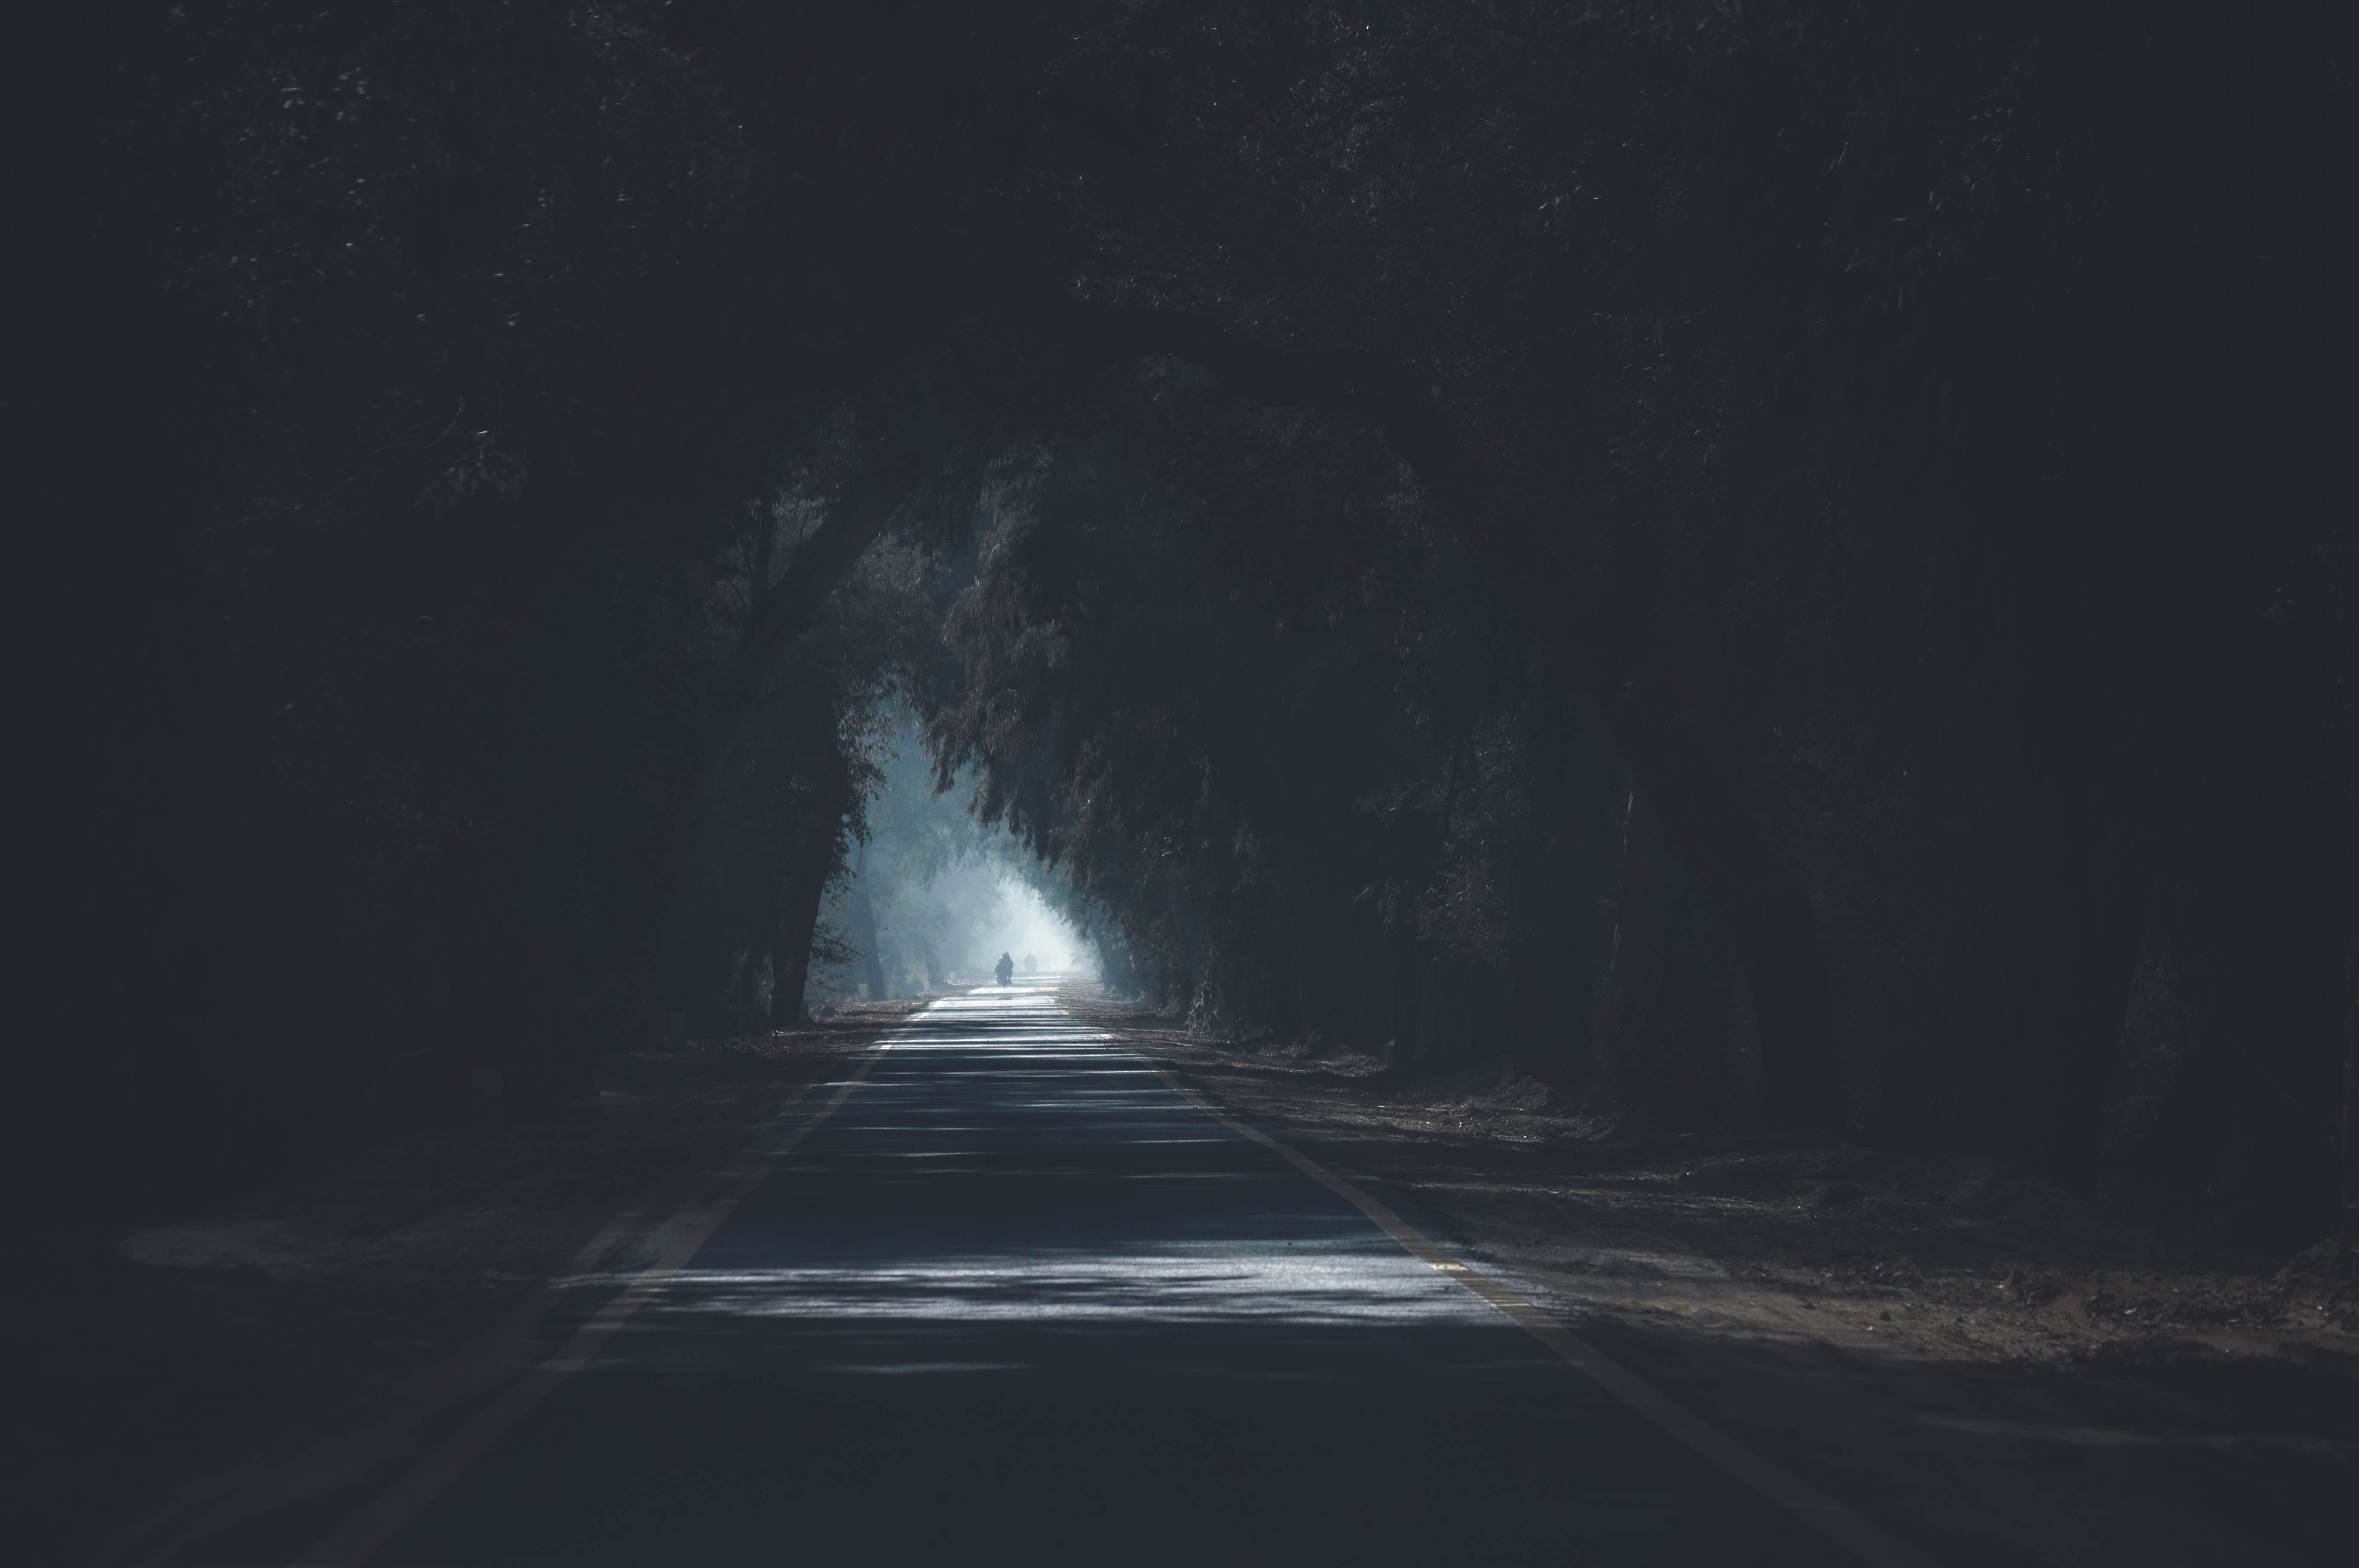 Concrete Road Surrounded by Trees, Blur, Concrete, Dark, Daylight, HQ Photo